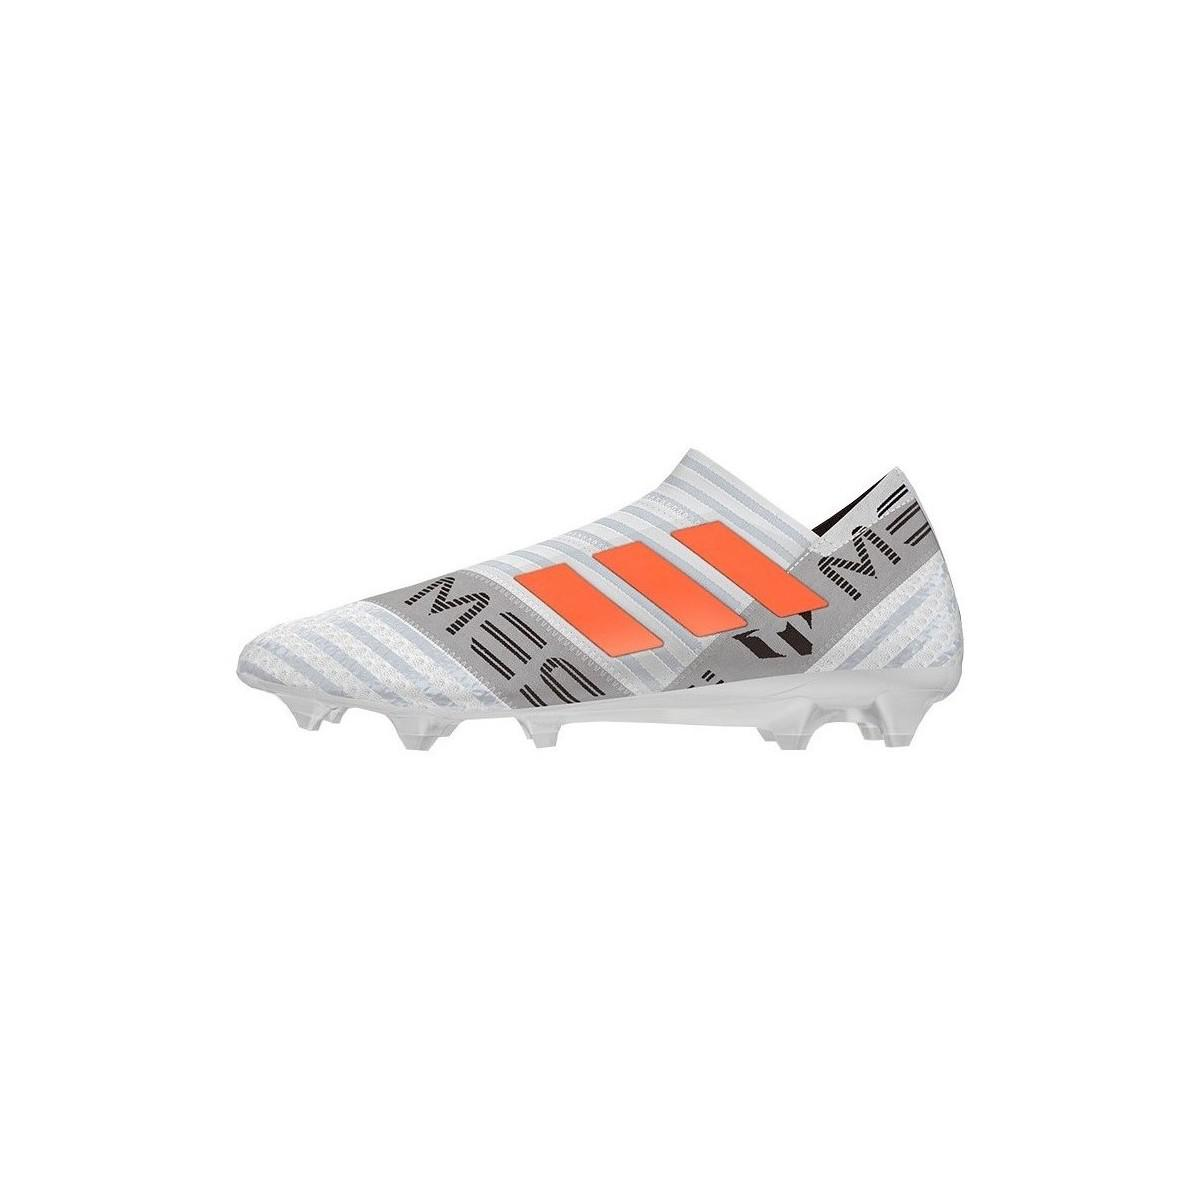 58a5a38e315 Adidas Nemeziz Messi 17 360 Agility Fg Men s Football Boots In Grey ...